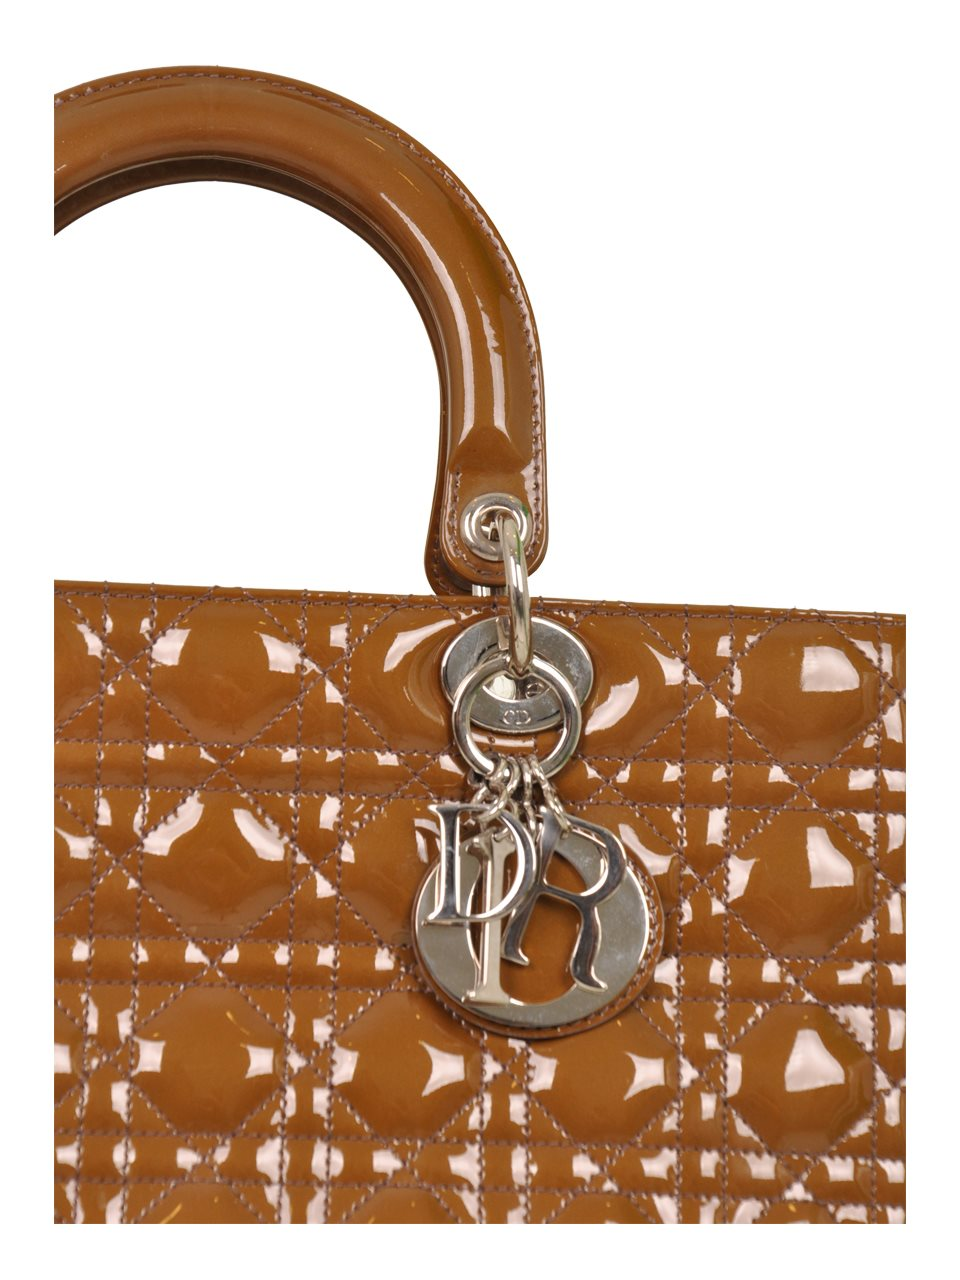 Christian Dior - Lady Dior Large Rugan - Image 5 of 7